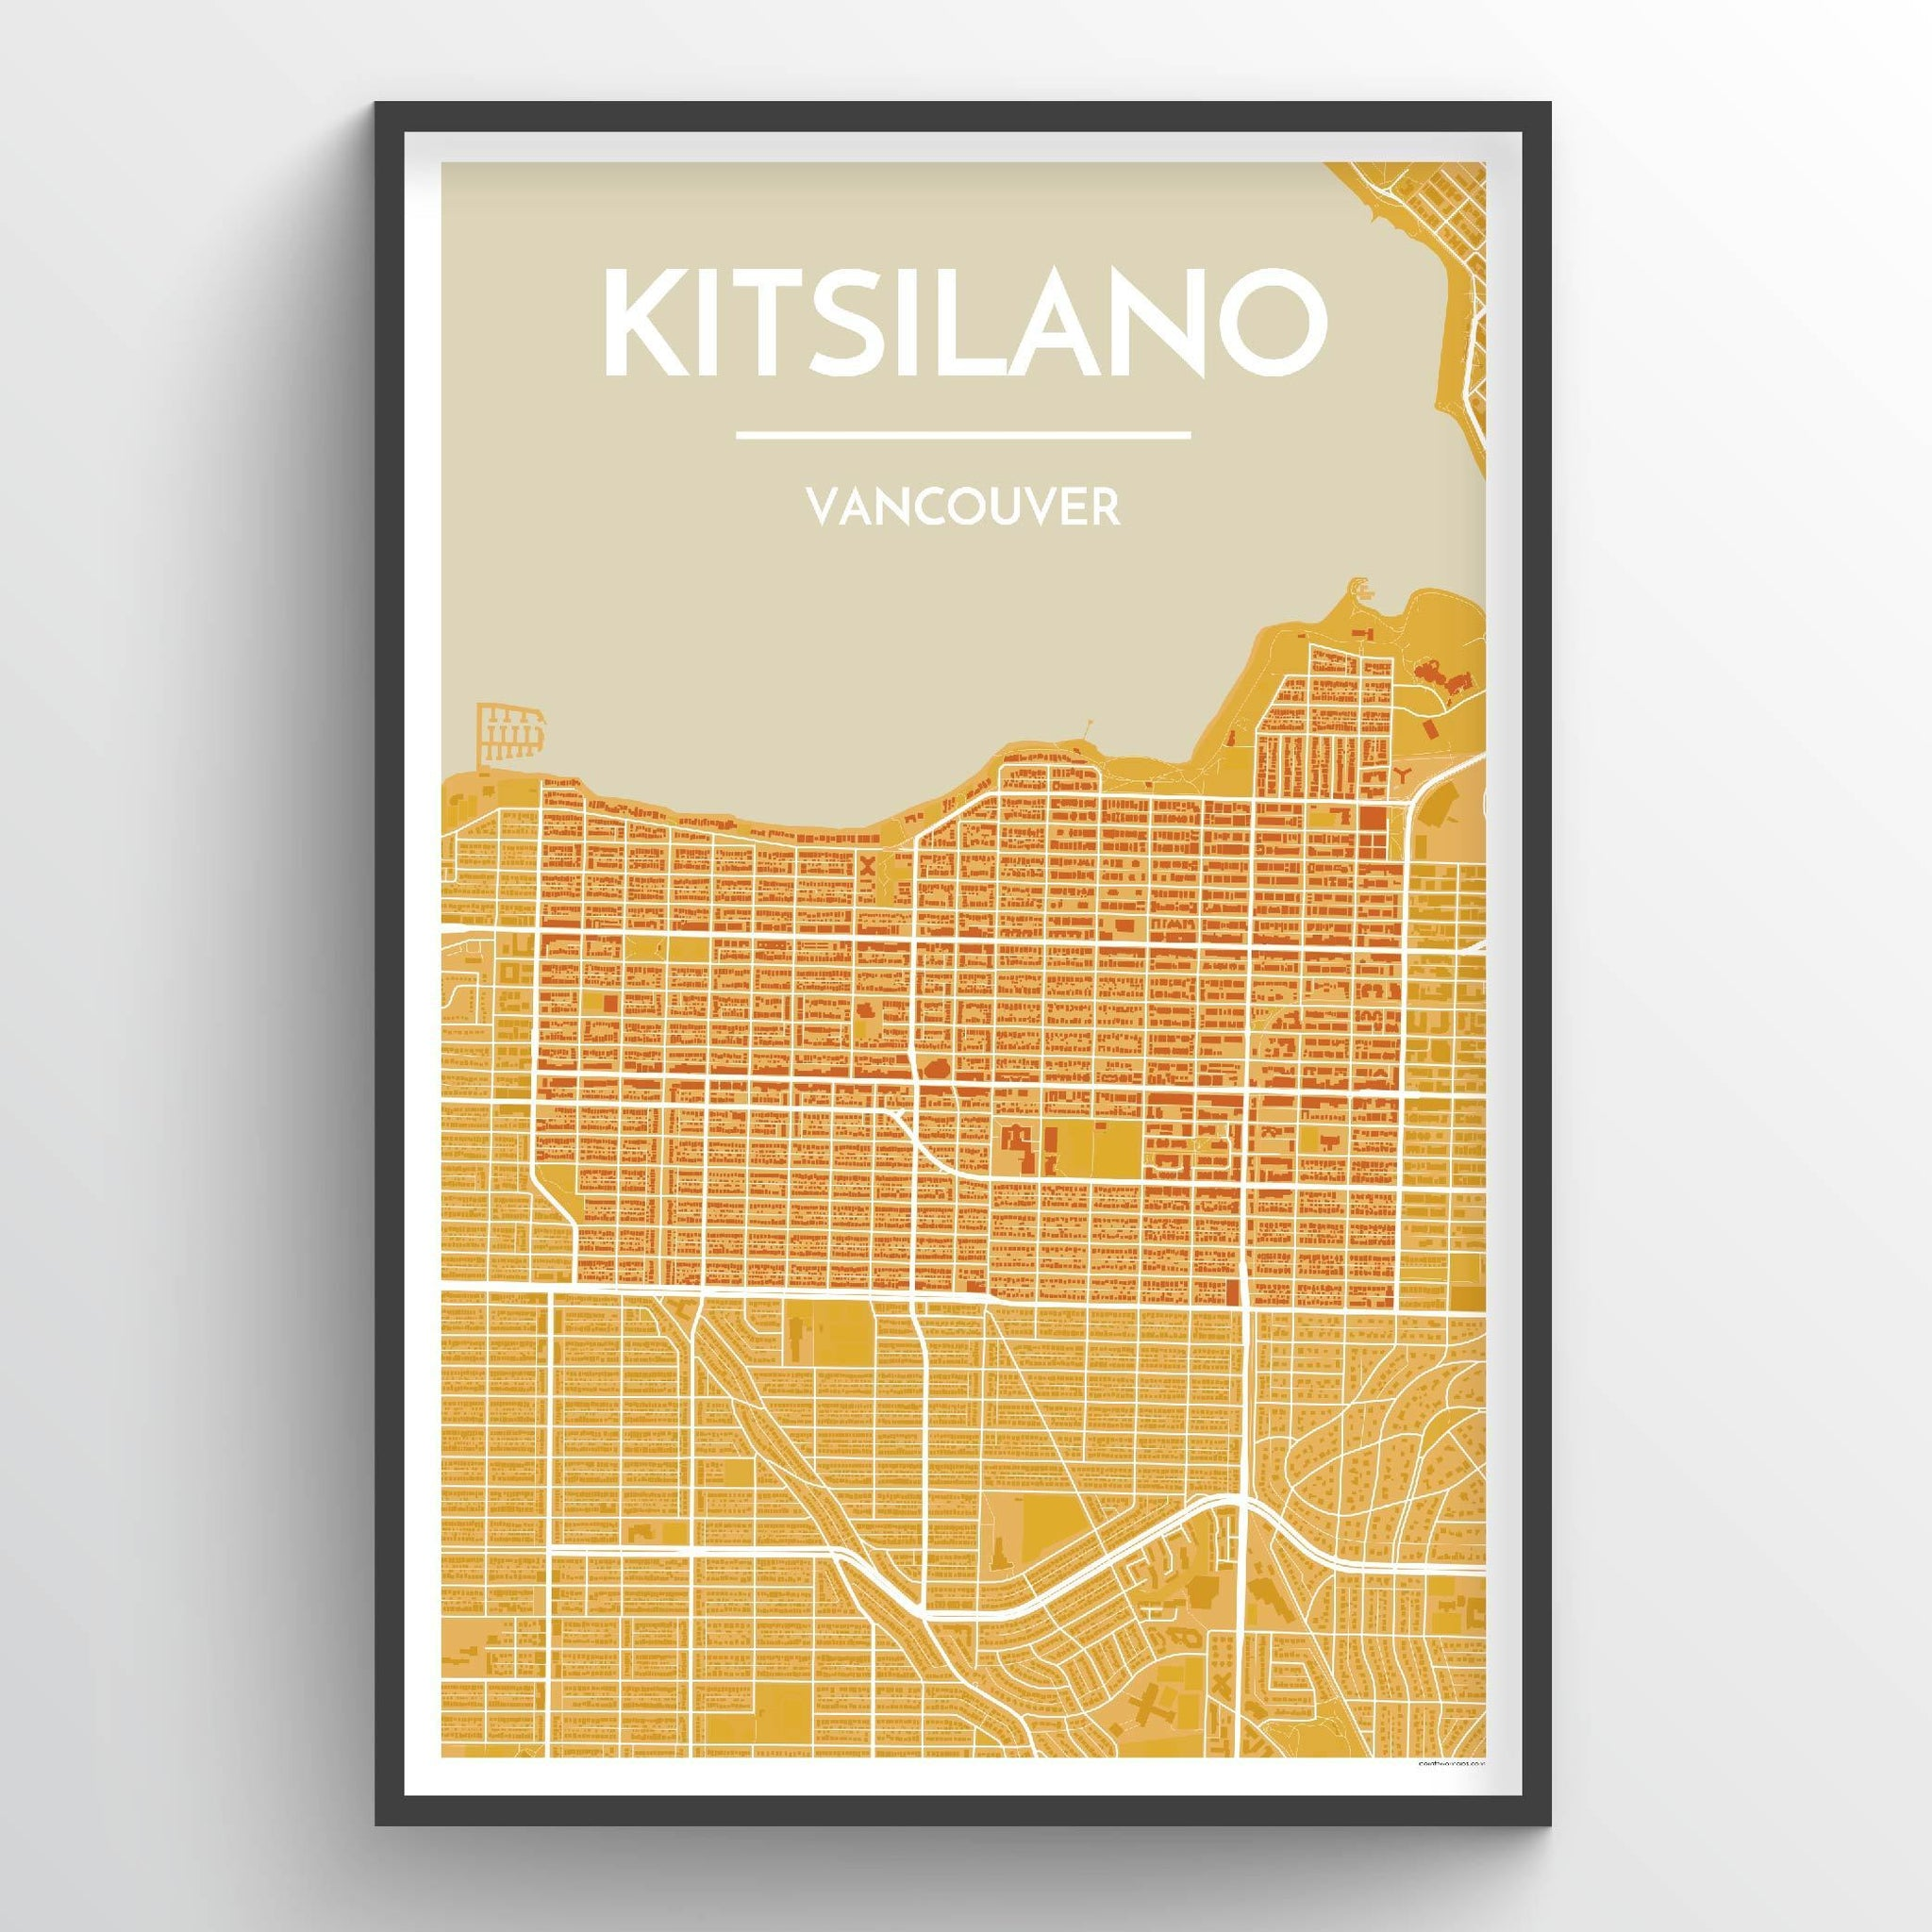 Kitsilano Vancouver City Map Art Print - Point Two Design